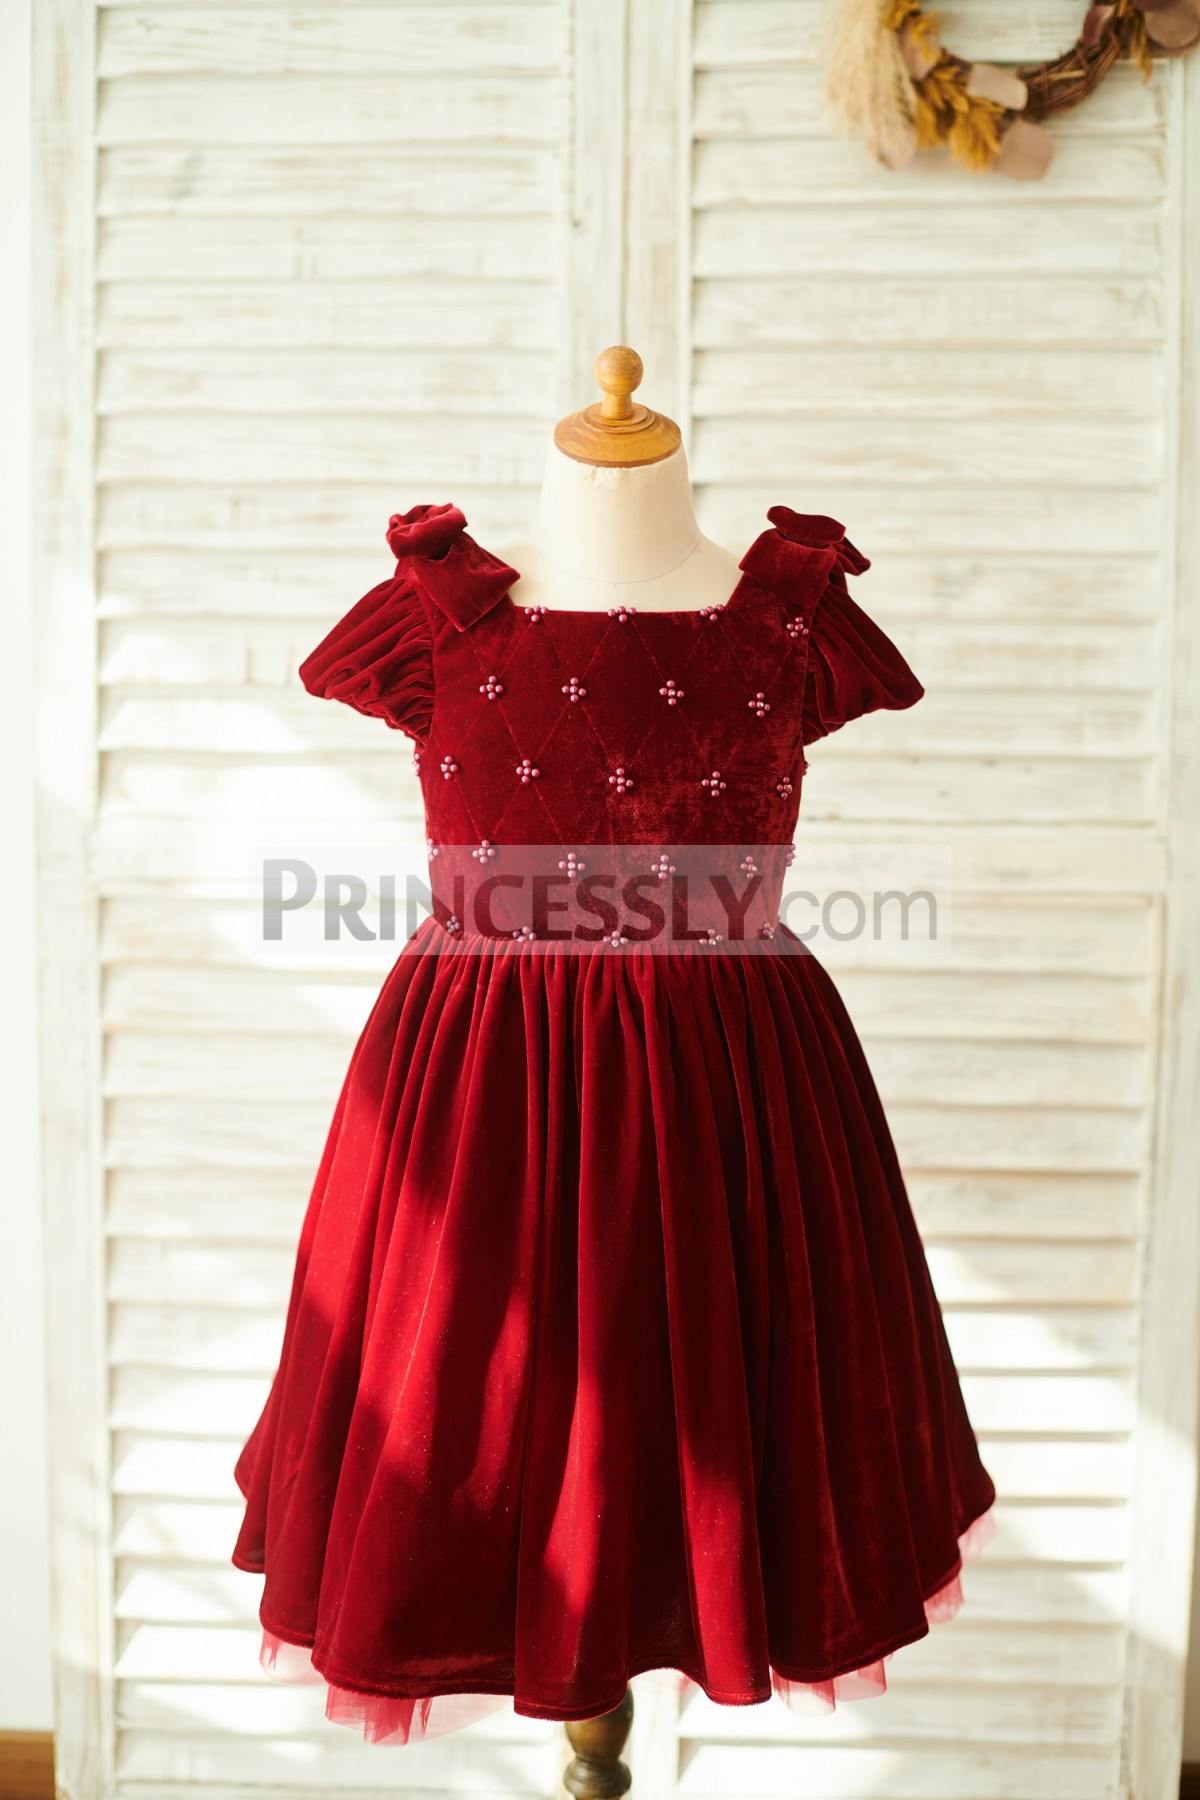 dcca0d442f1 Cap Sleeve Open Corset Back Burgundy Velvet Wedding Flowergirl Dress ...